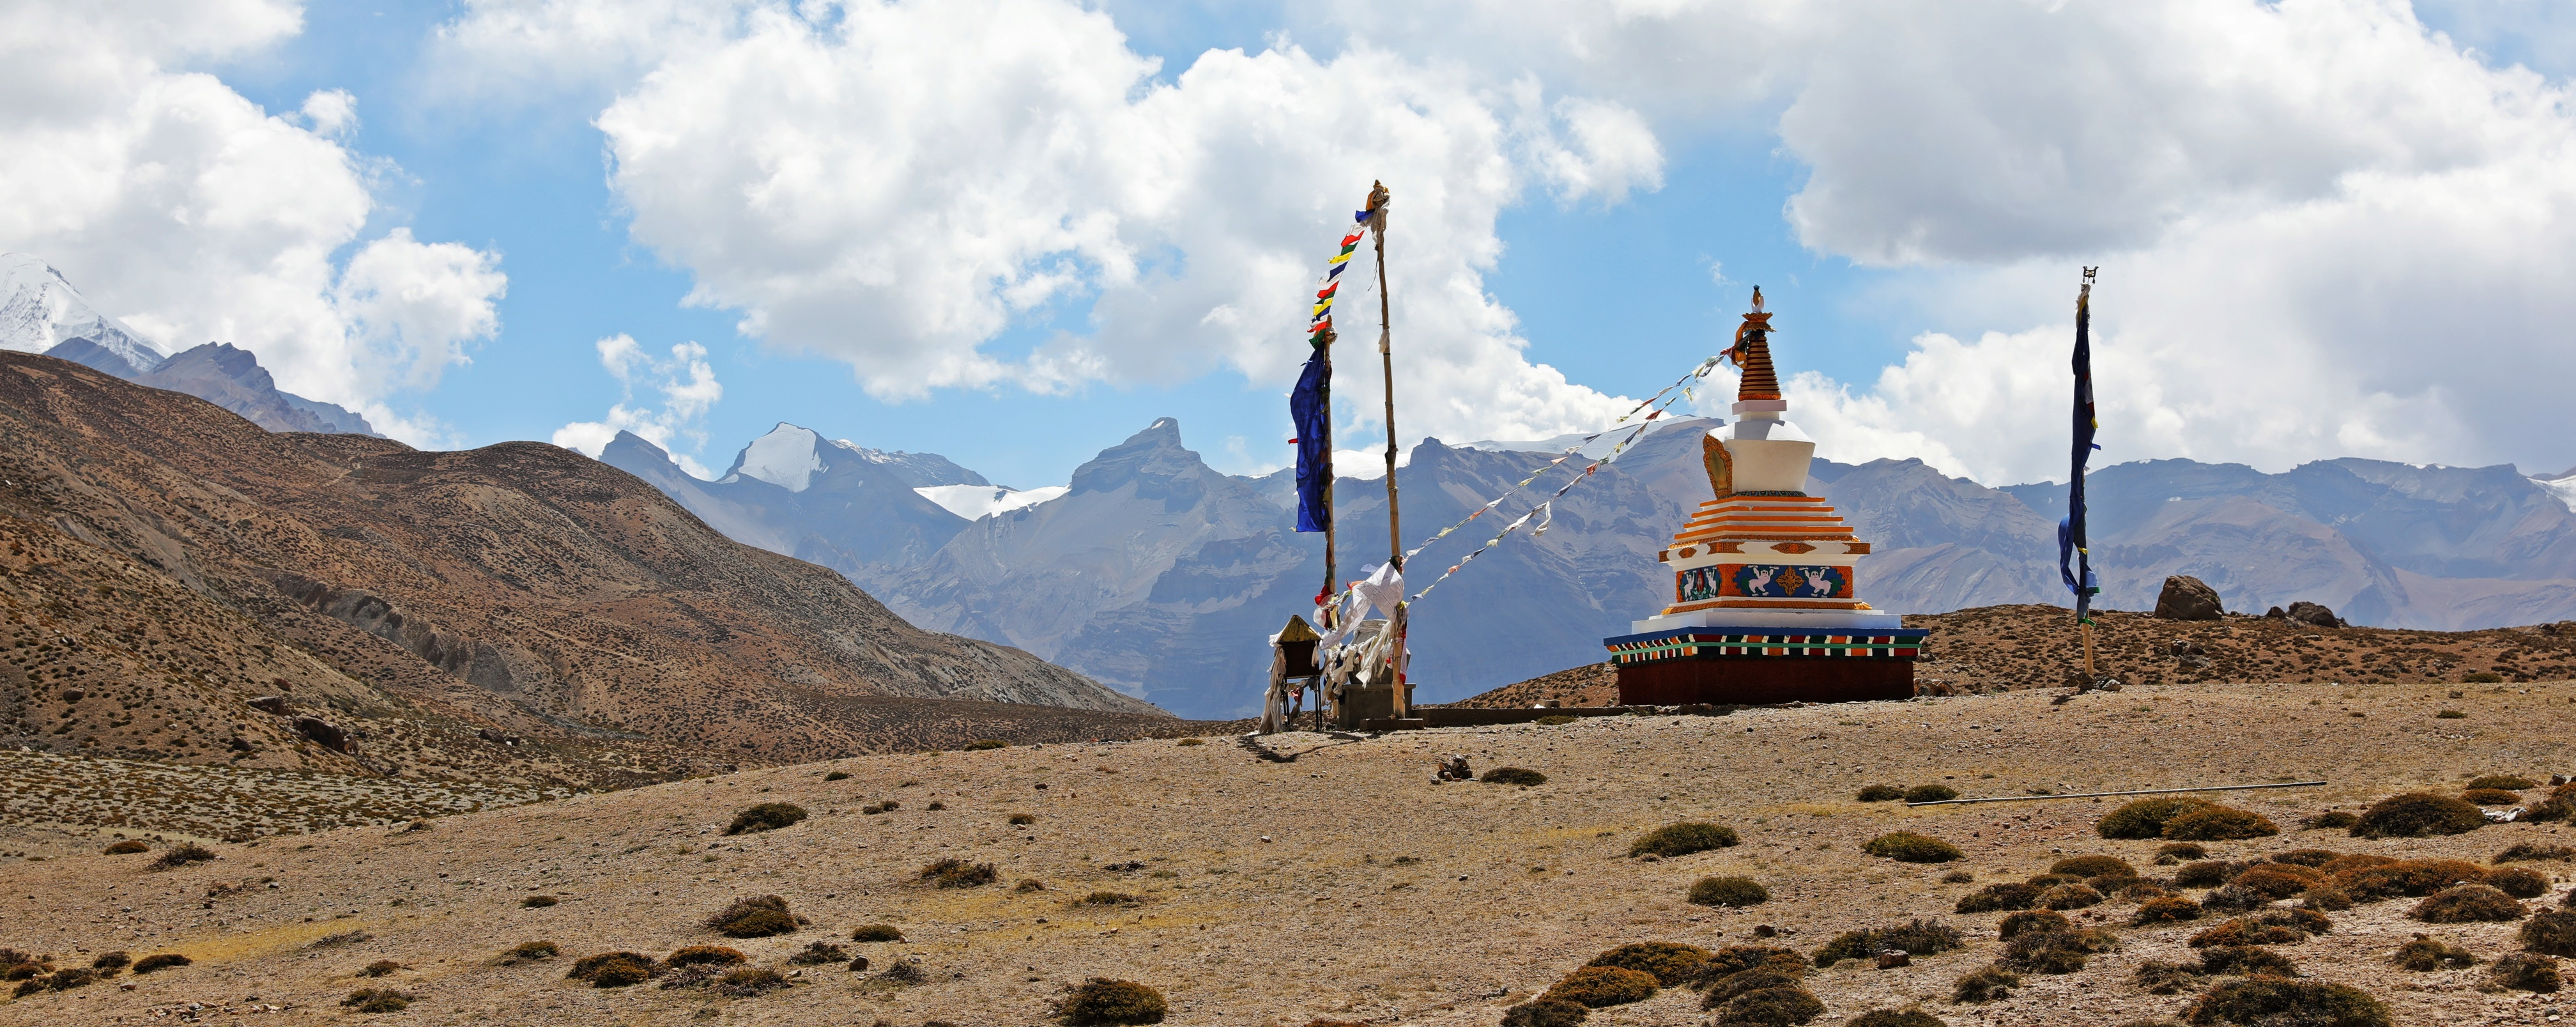 Chorten at Dhankar Lake